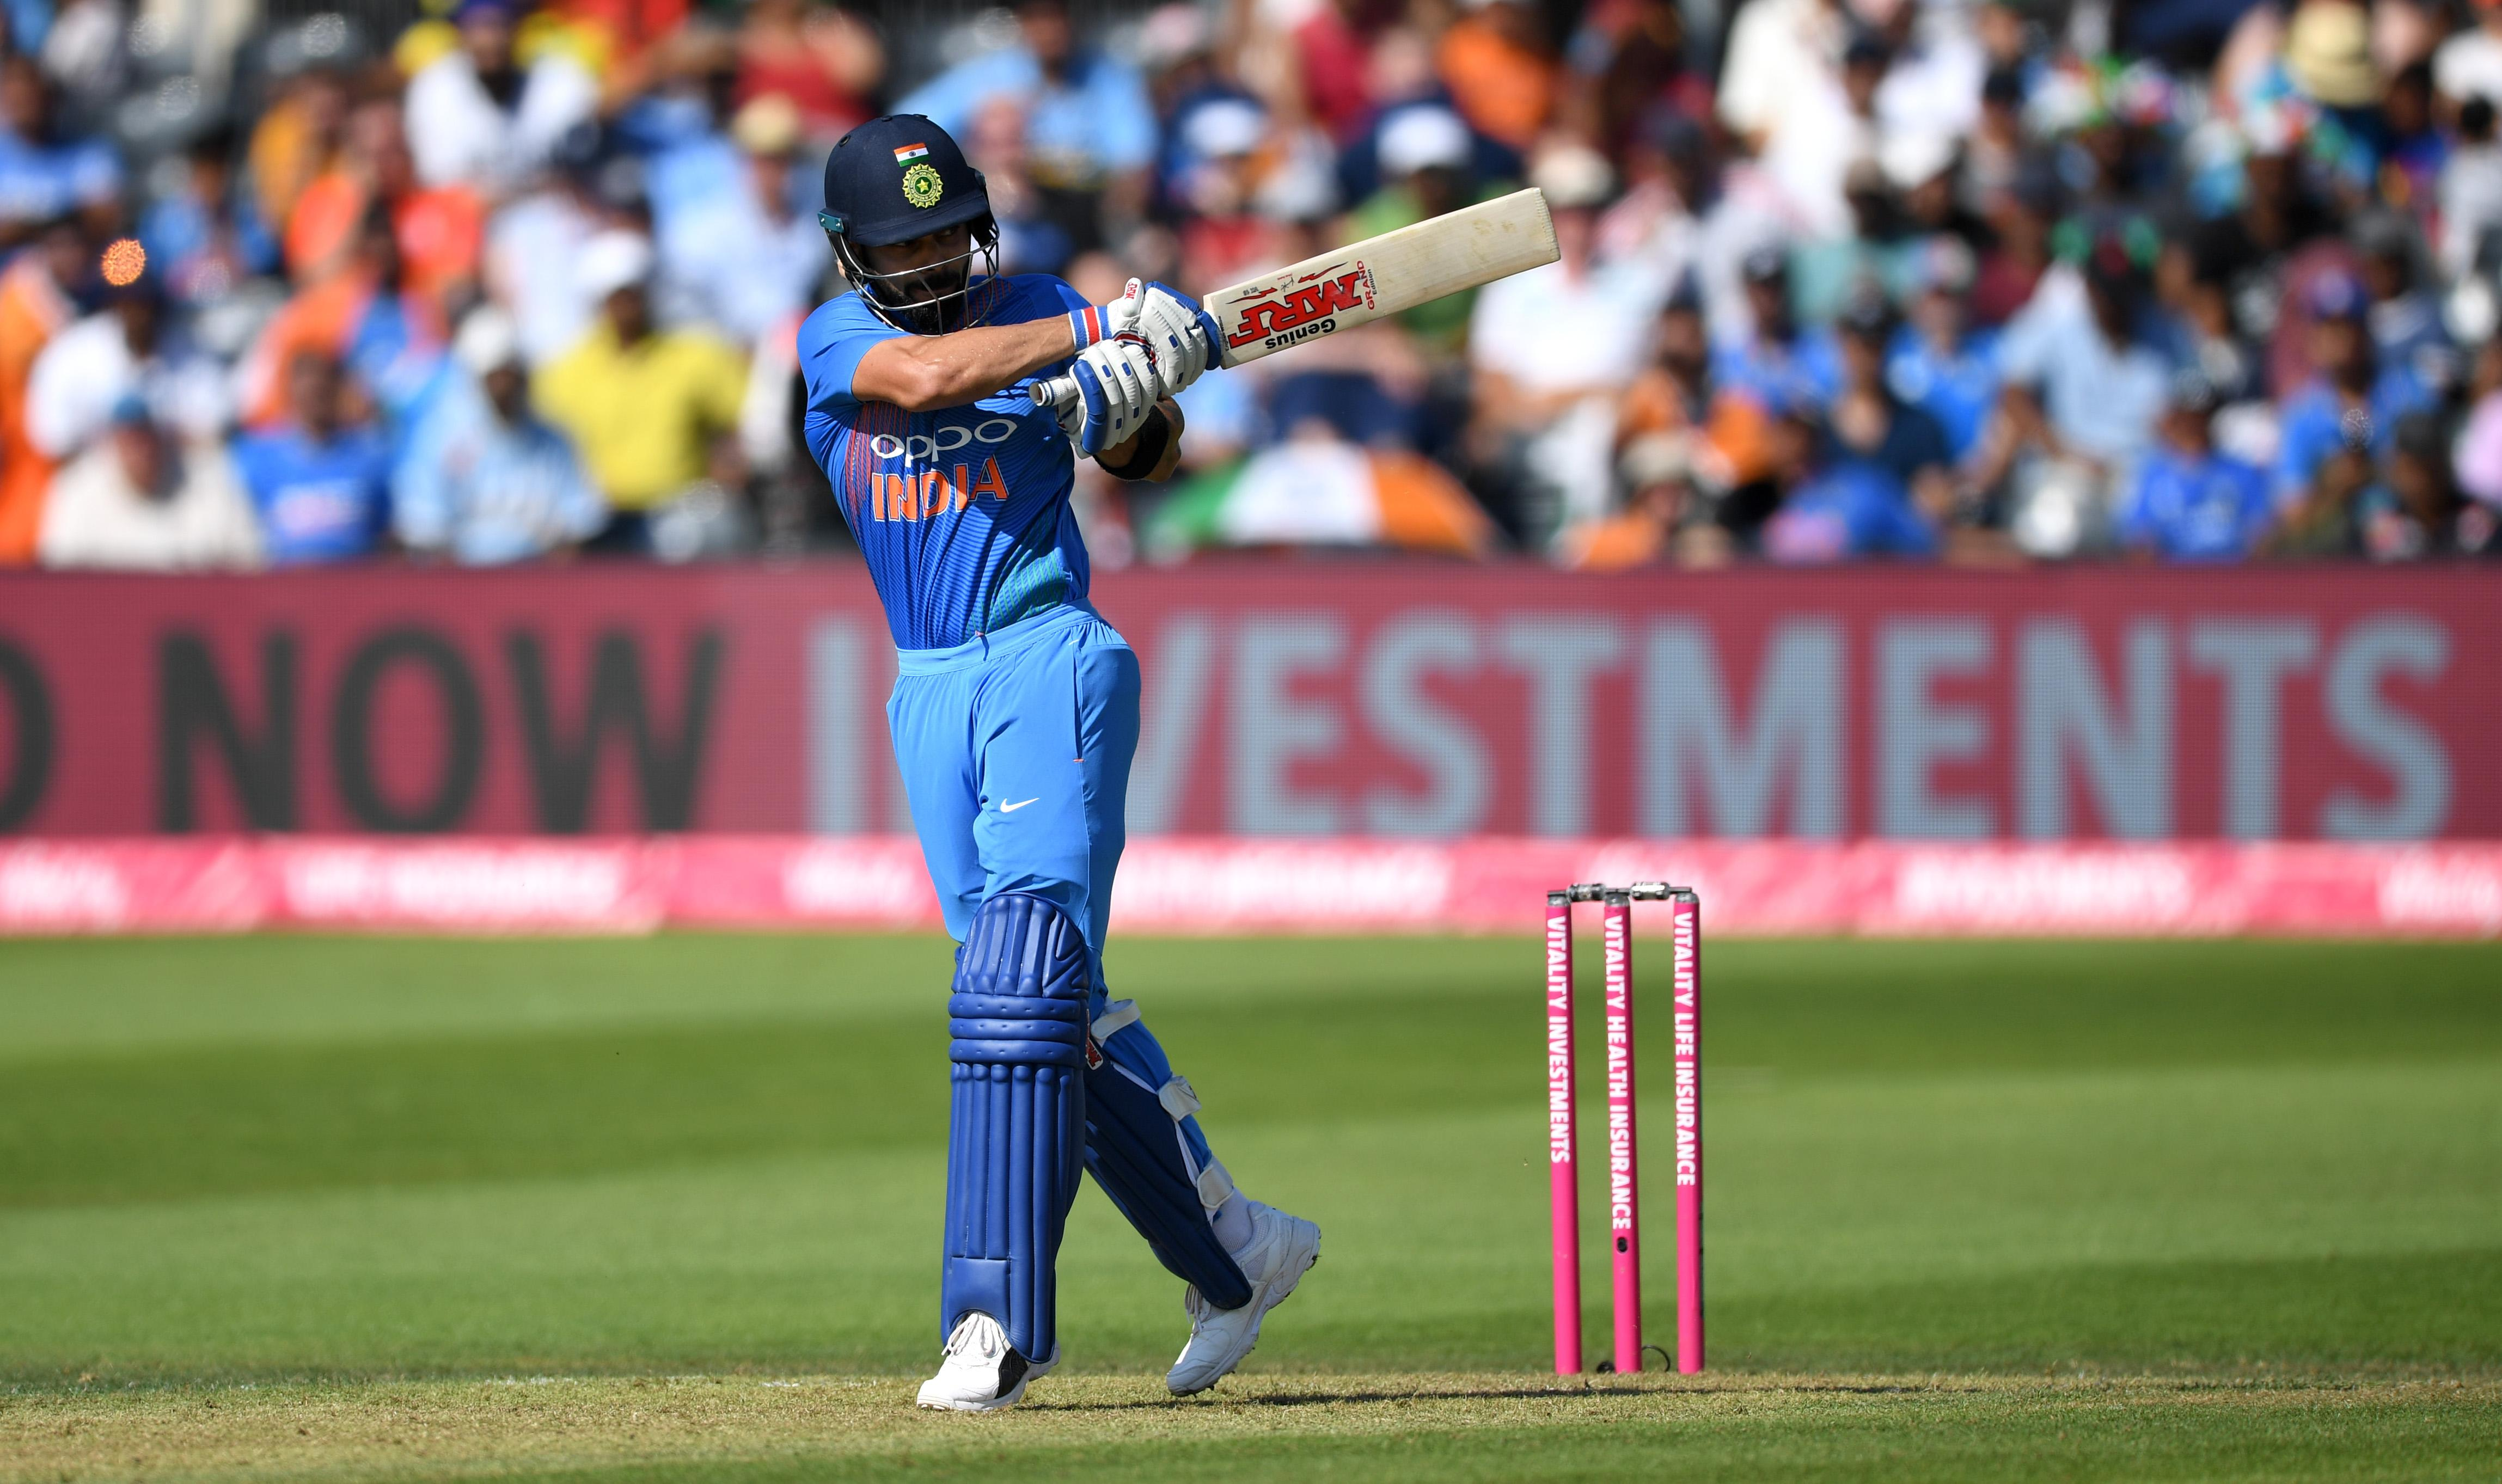 Virat Kohli scored 43 in an excellent chase of 199 as India clinched a 2-1 series win